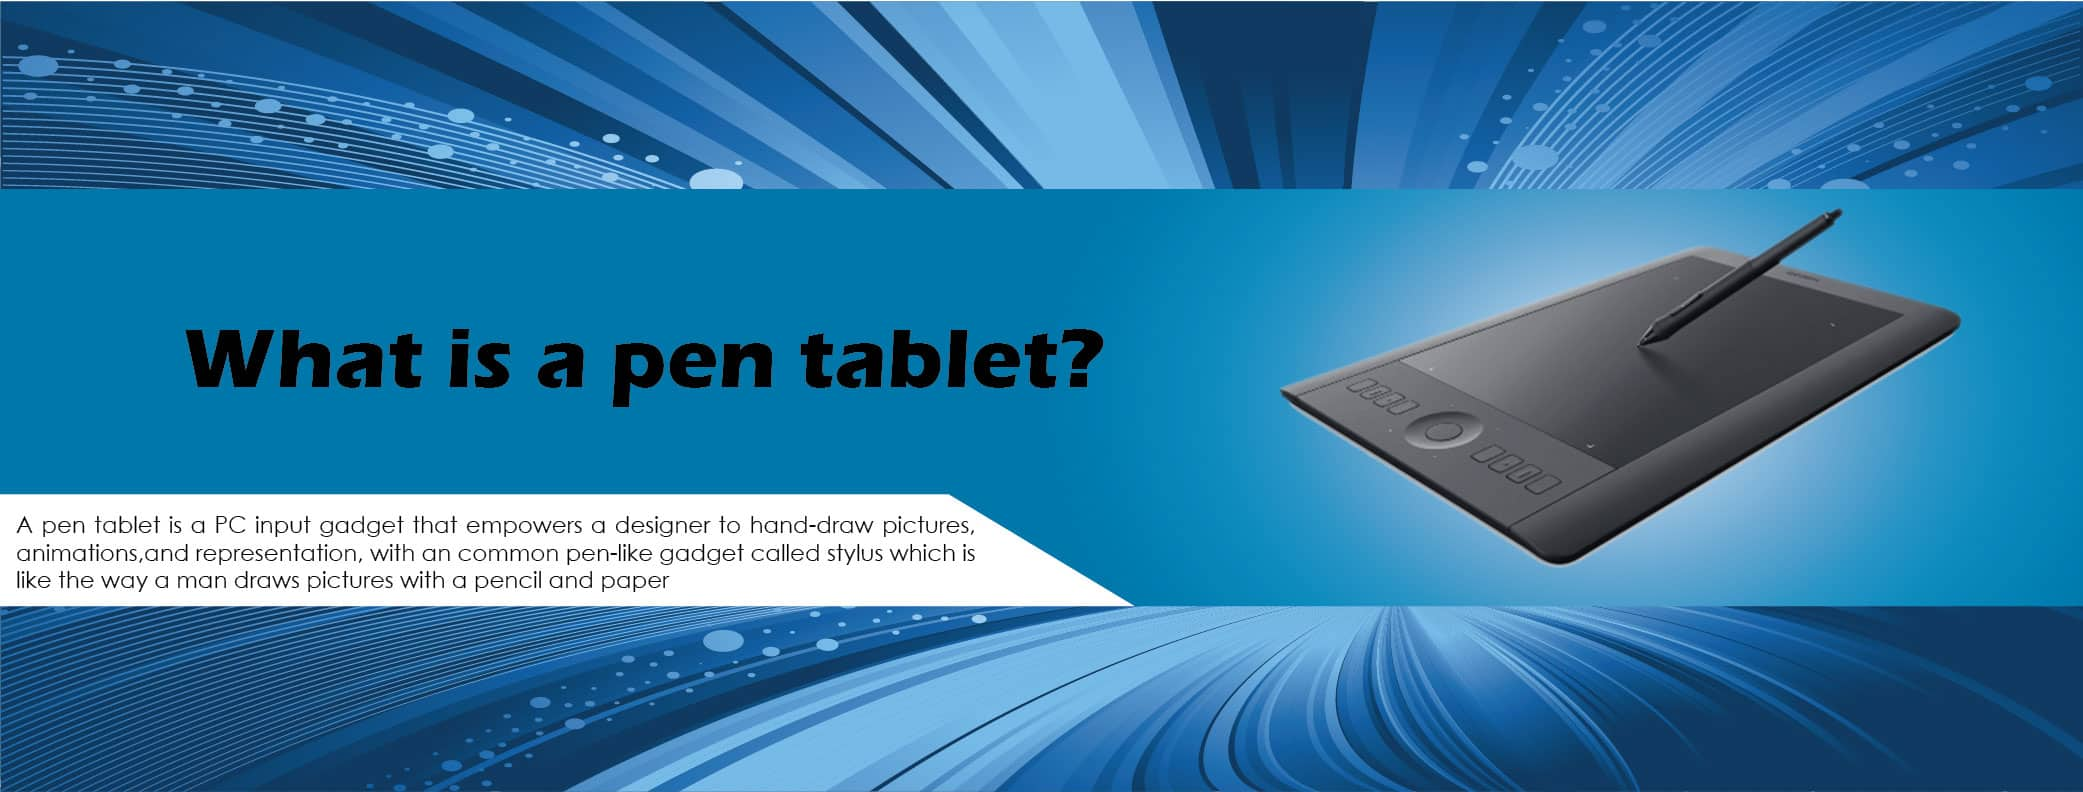 What is a pen tablet-01